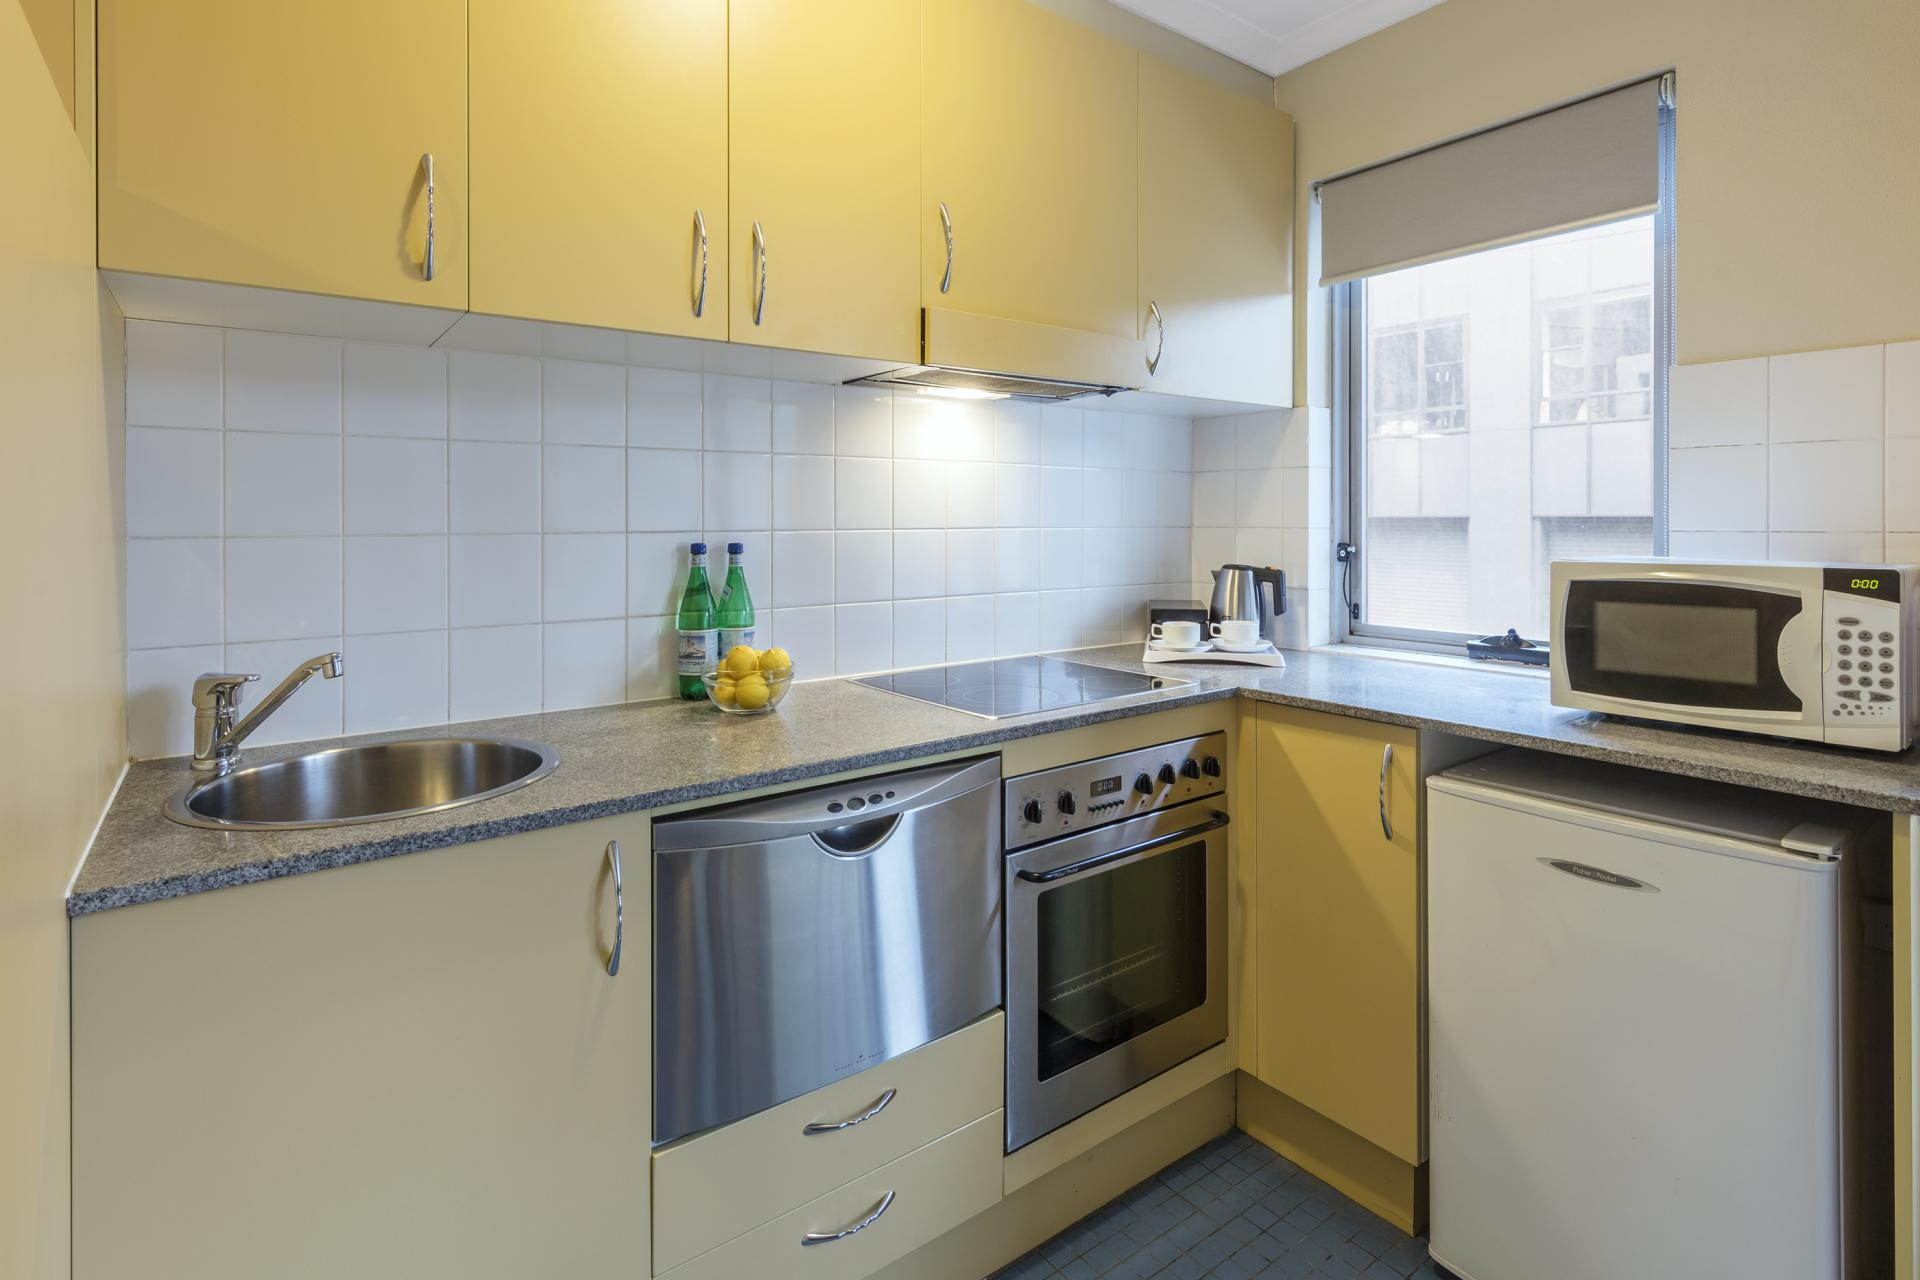 Kitchen at Nesuto Chippendale Apartment Hotel, Chippendale, Sydney